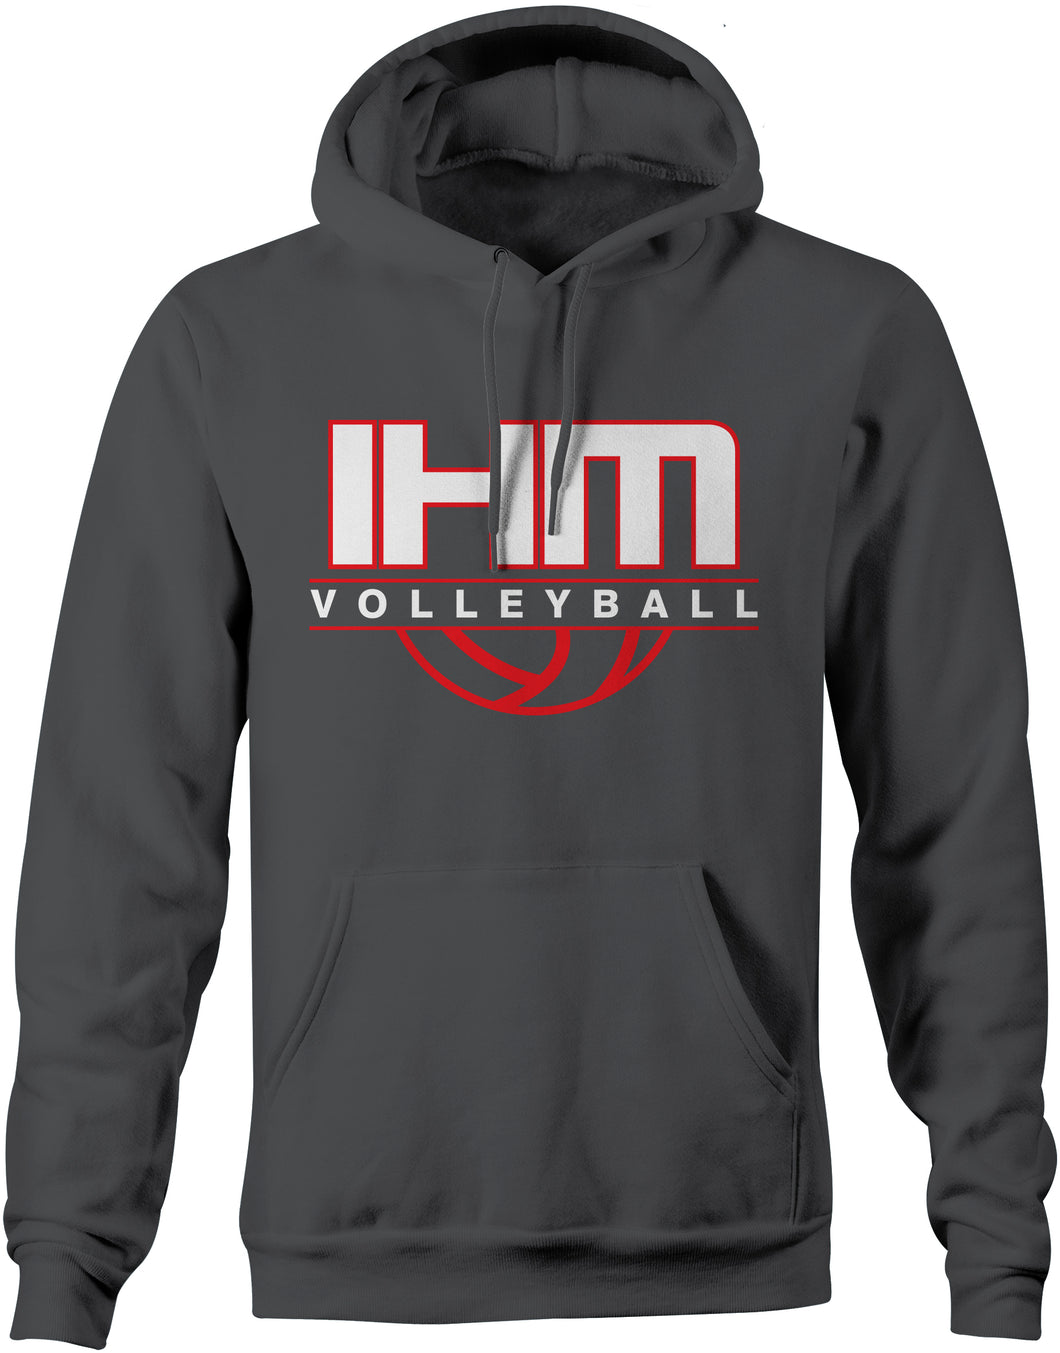 Graphite Volleyball Performance Hoodie